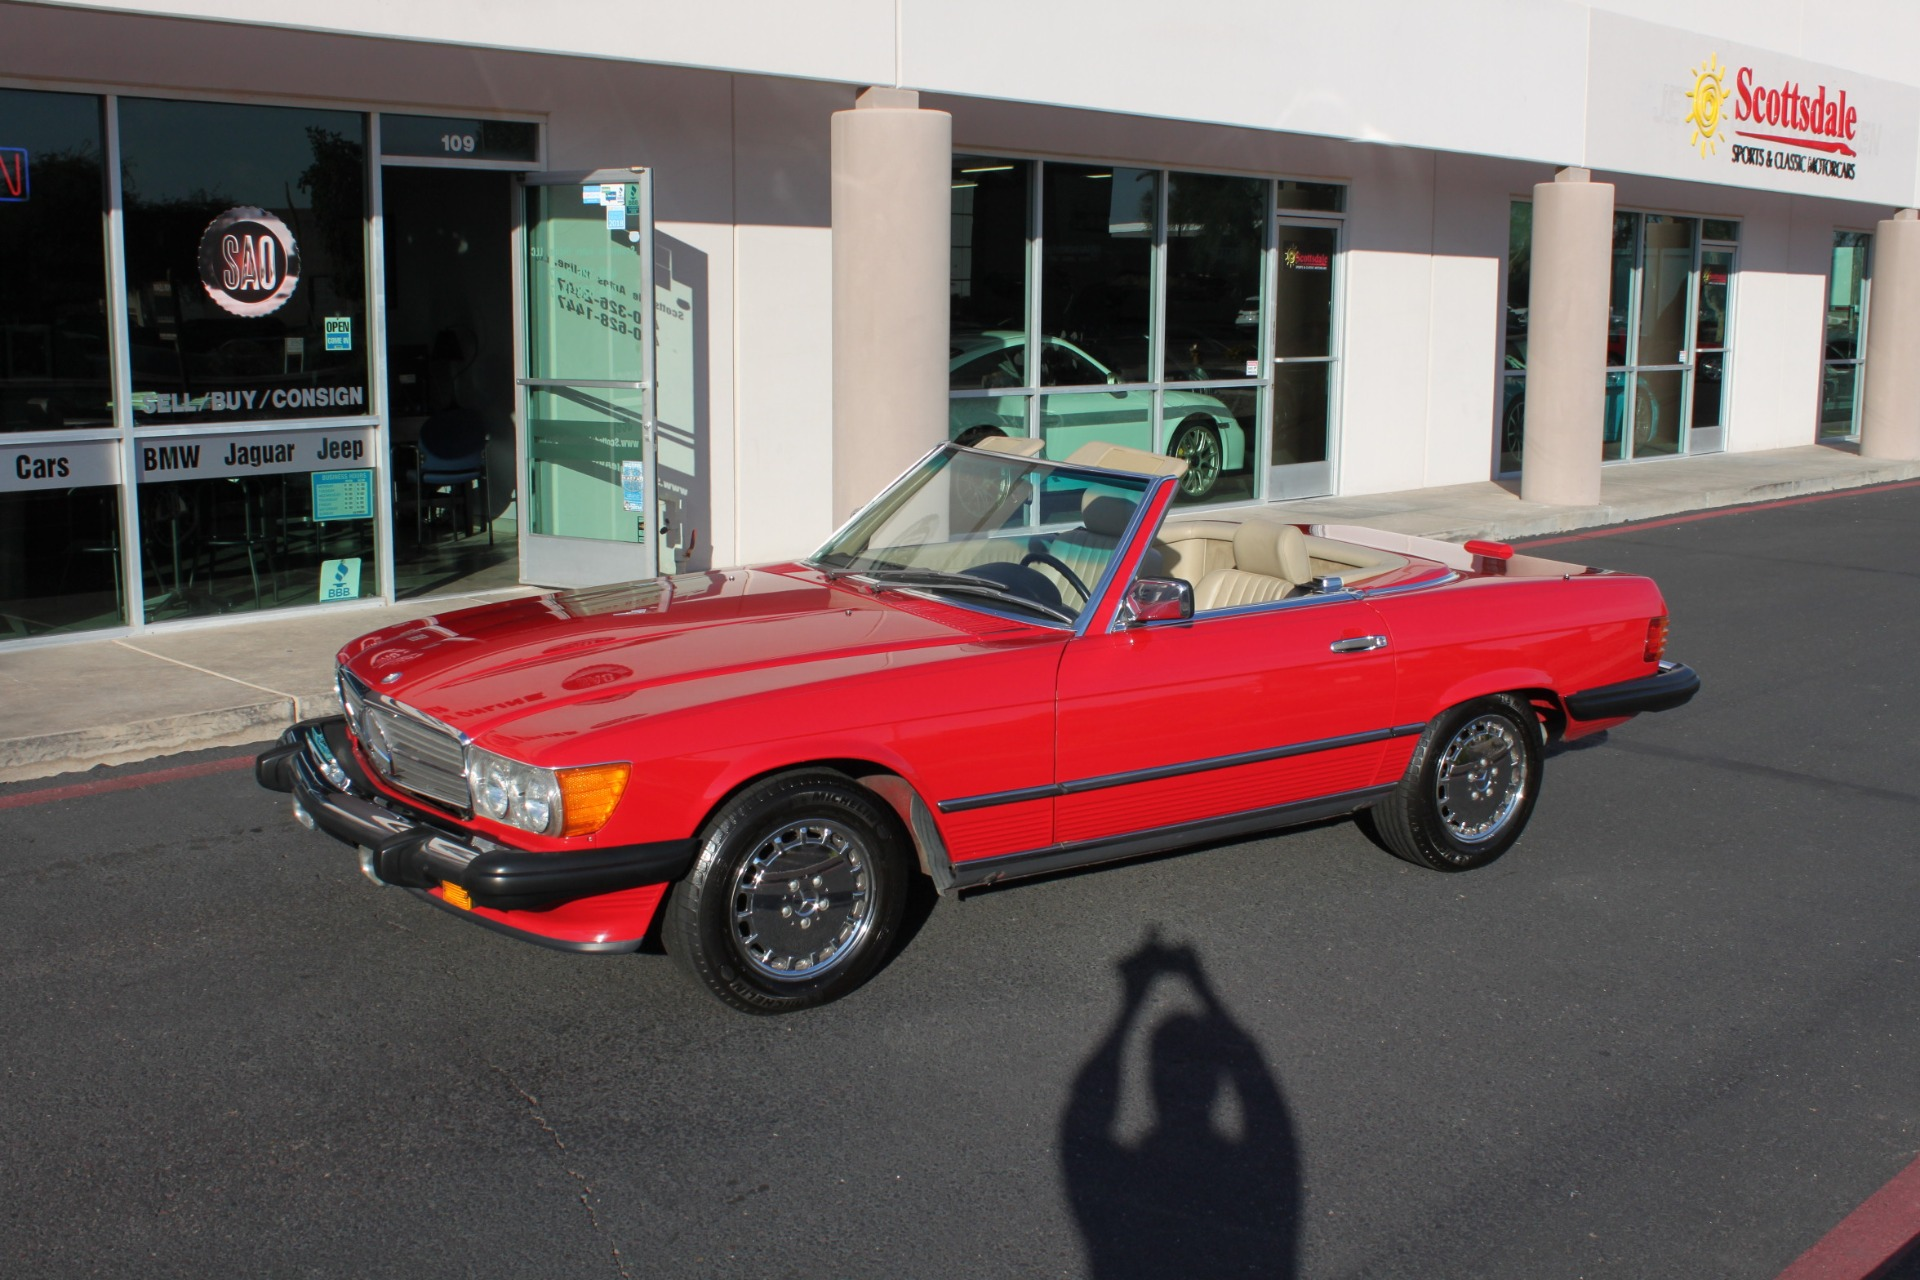 Used-1989-Mercedes-Benz-560-Series-560SL-Acura